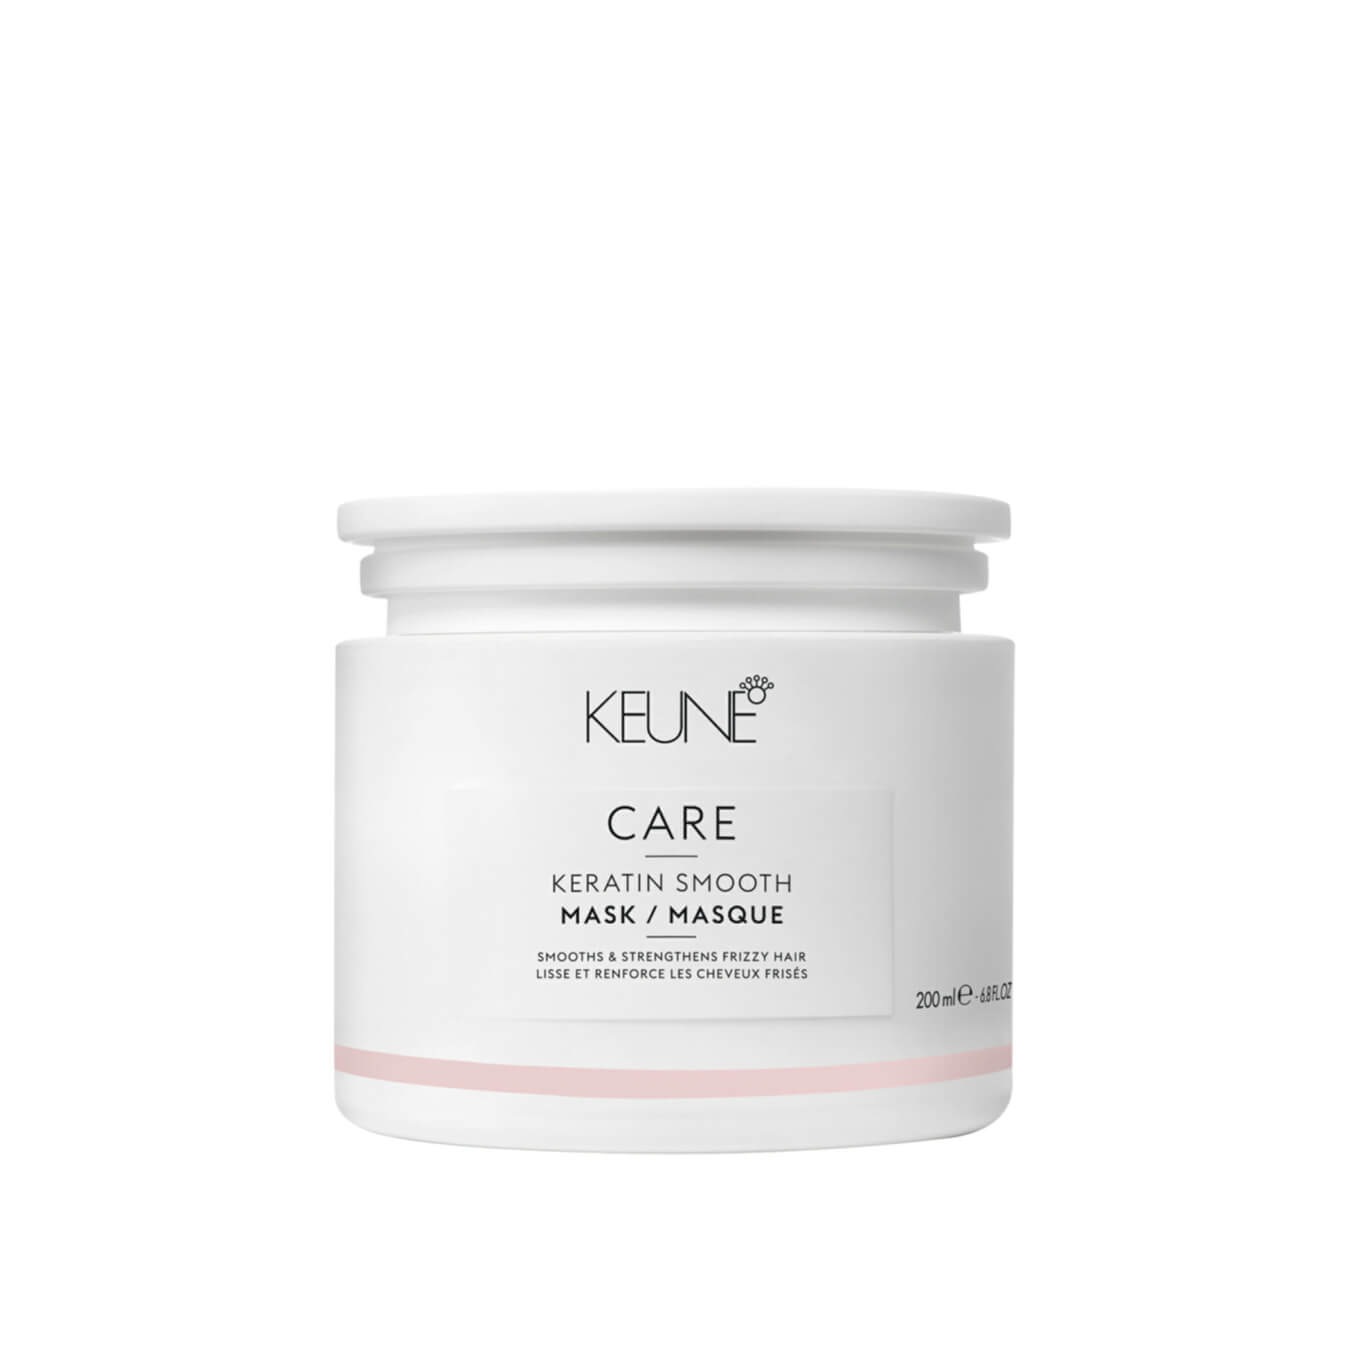 Kauf Keune Care Keratin Smooth Mask 200ml